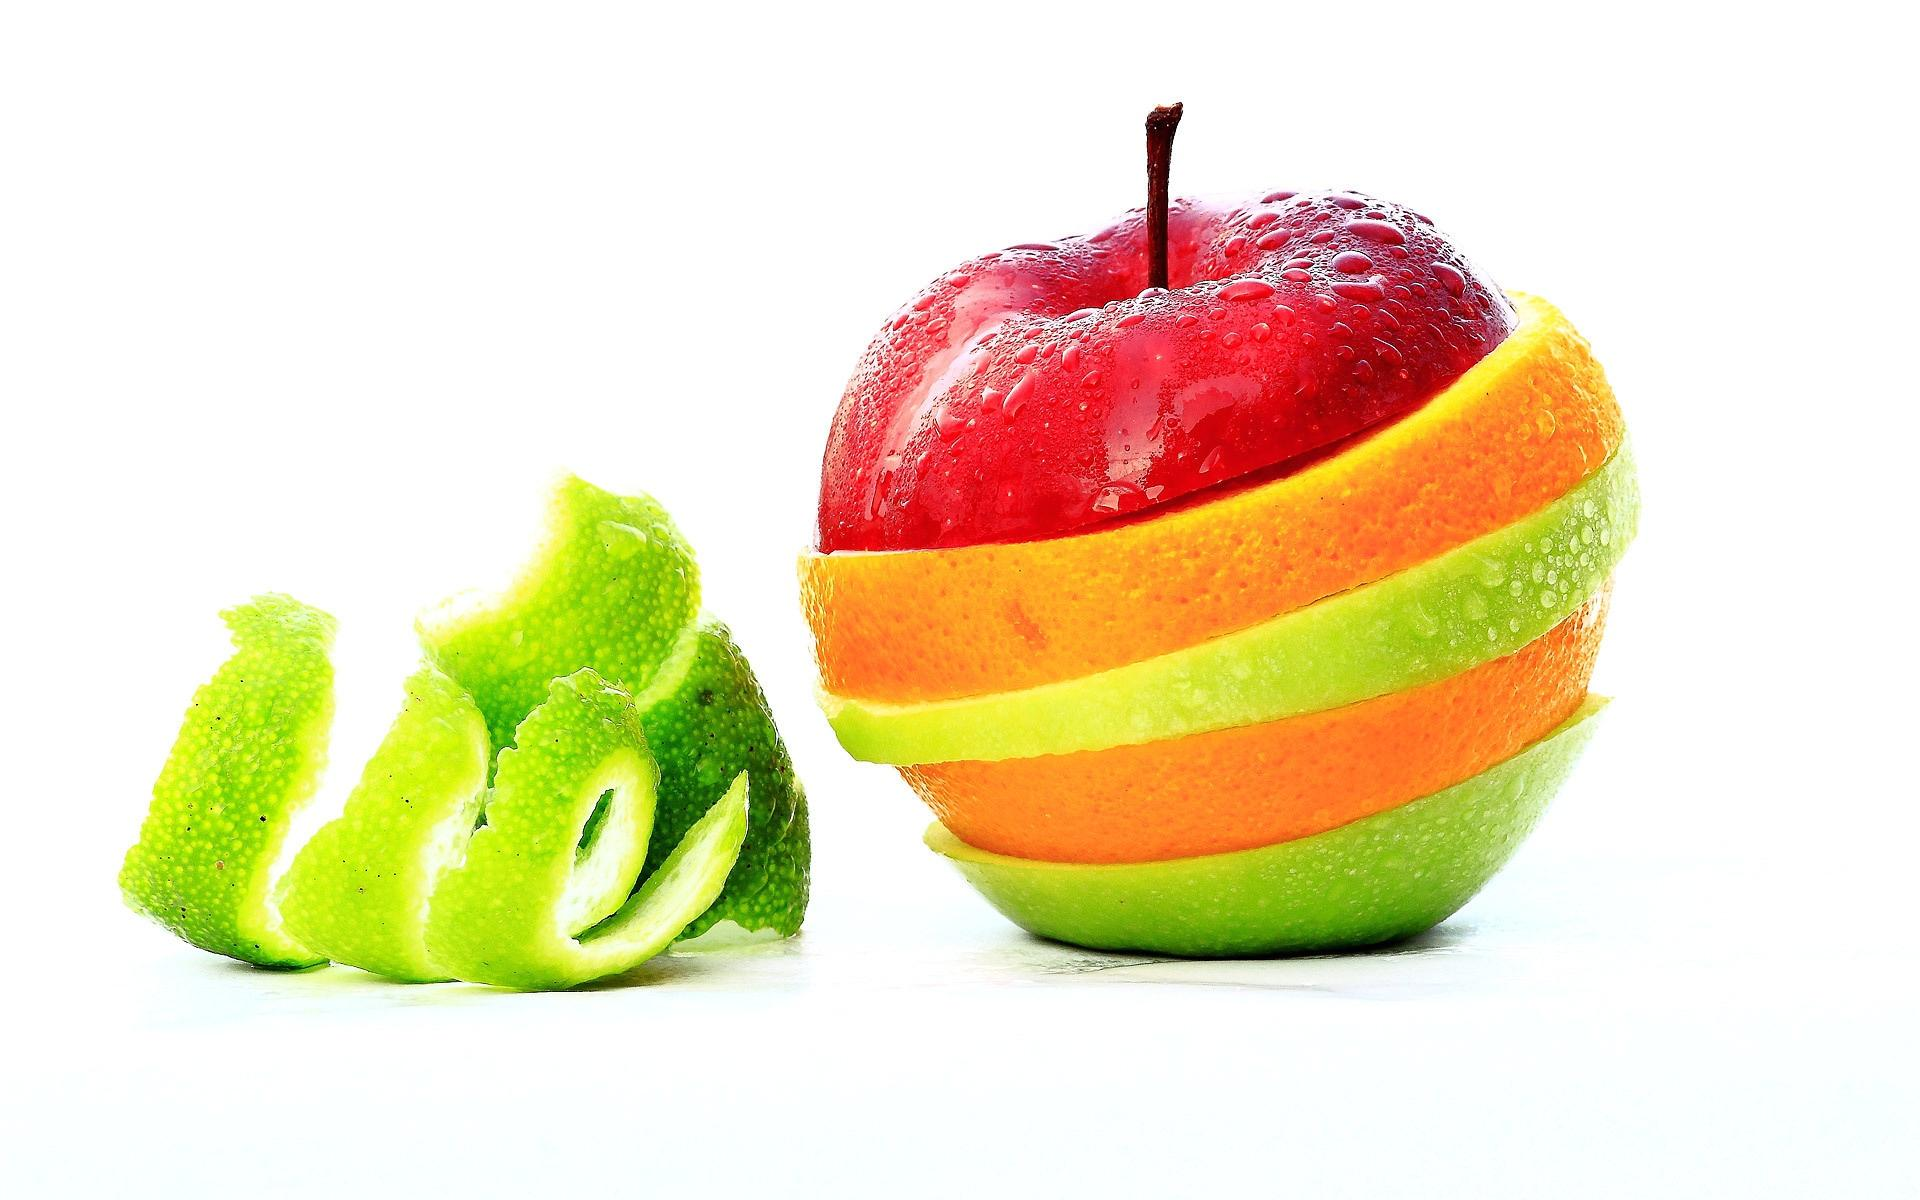 wallpaper-sliced-fruits-like-apple.jpg